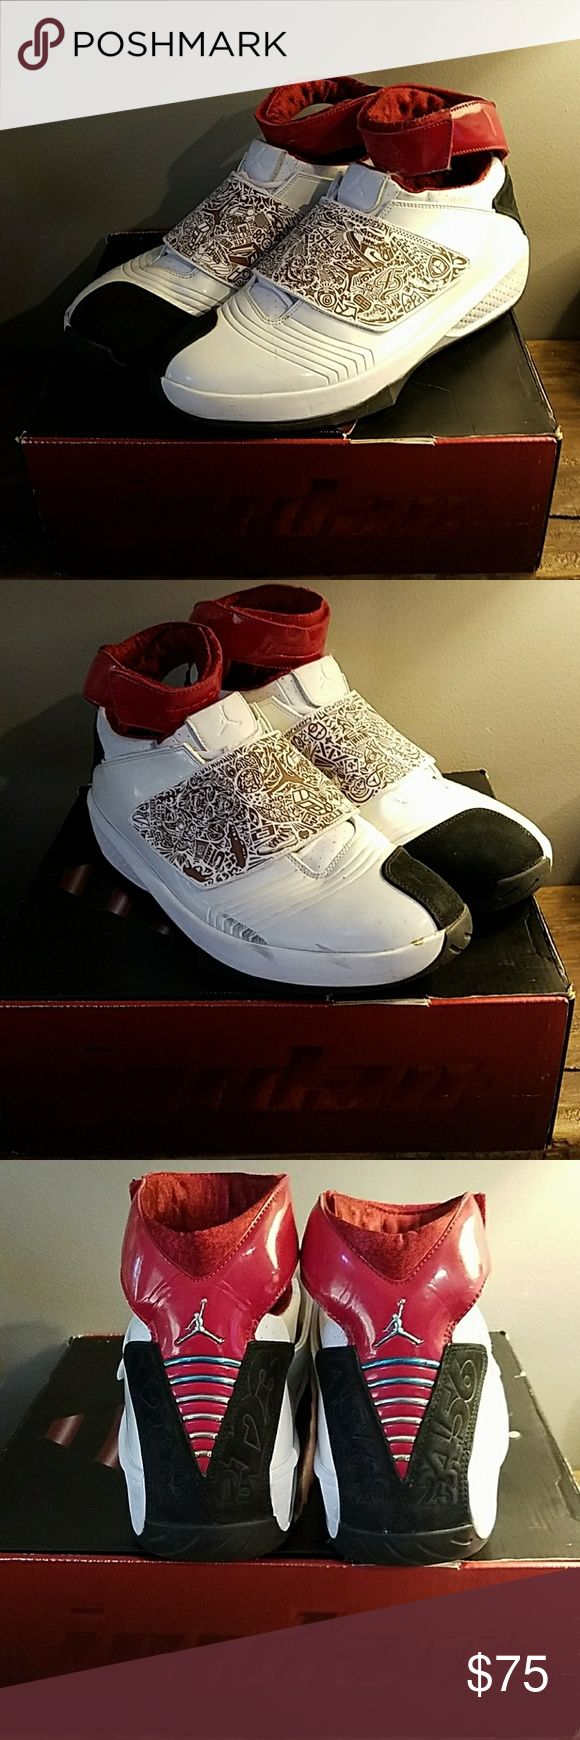 Jordan 20 quickstrike size 11.5 Pre-owned. Scuffs as seen in pictures. With box. Jordan Shoes Sneakers